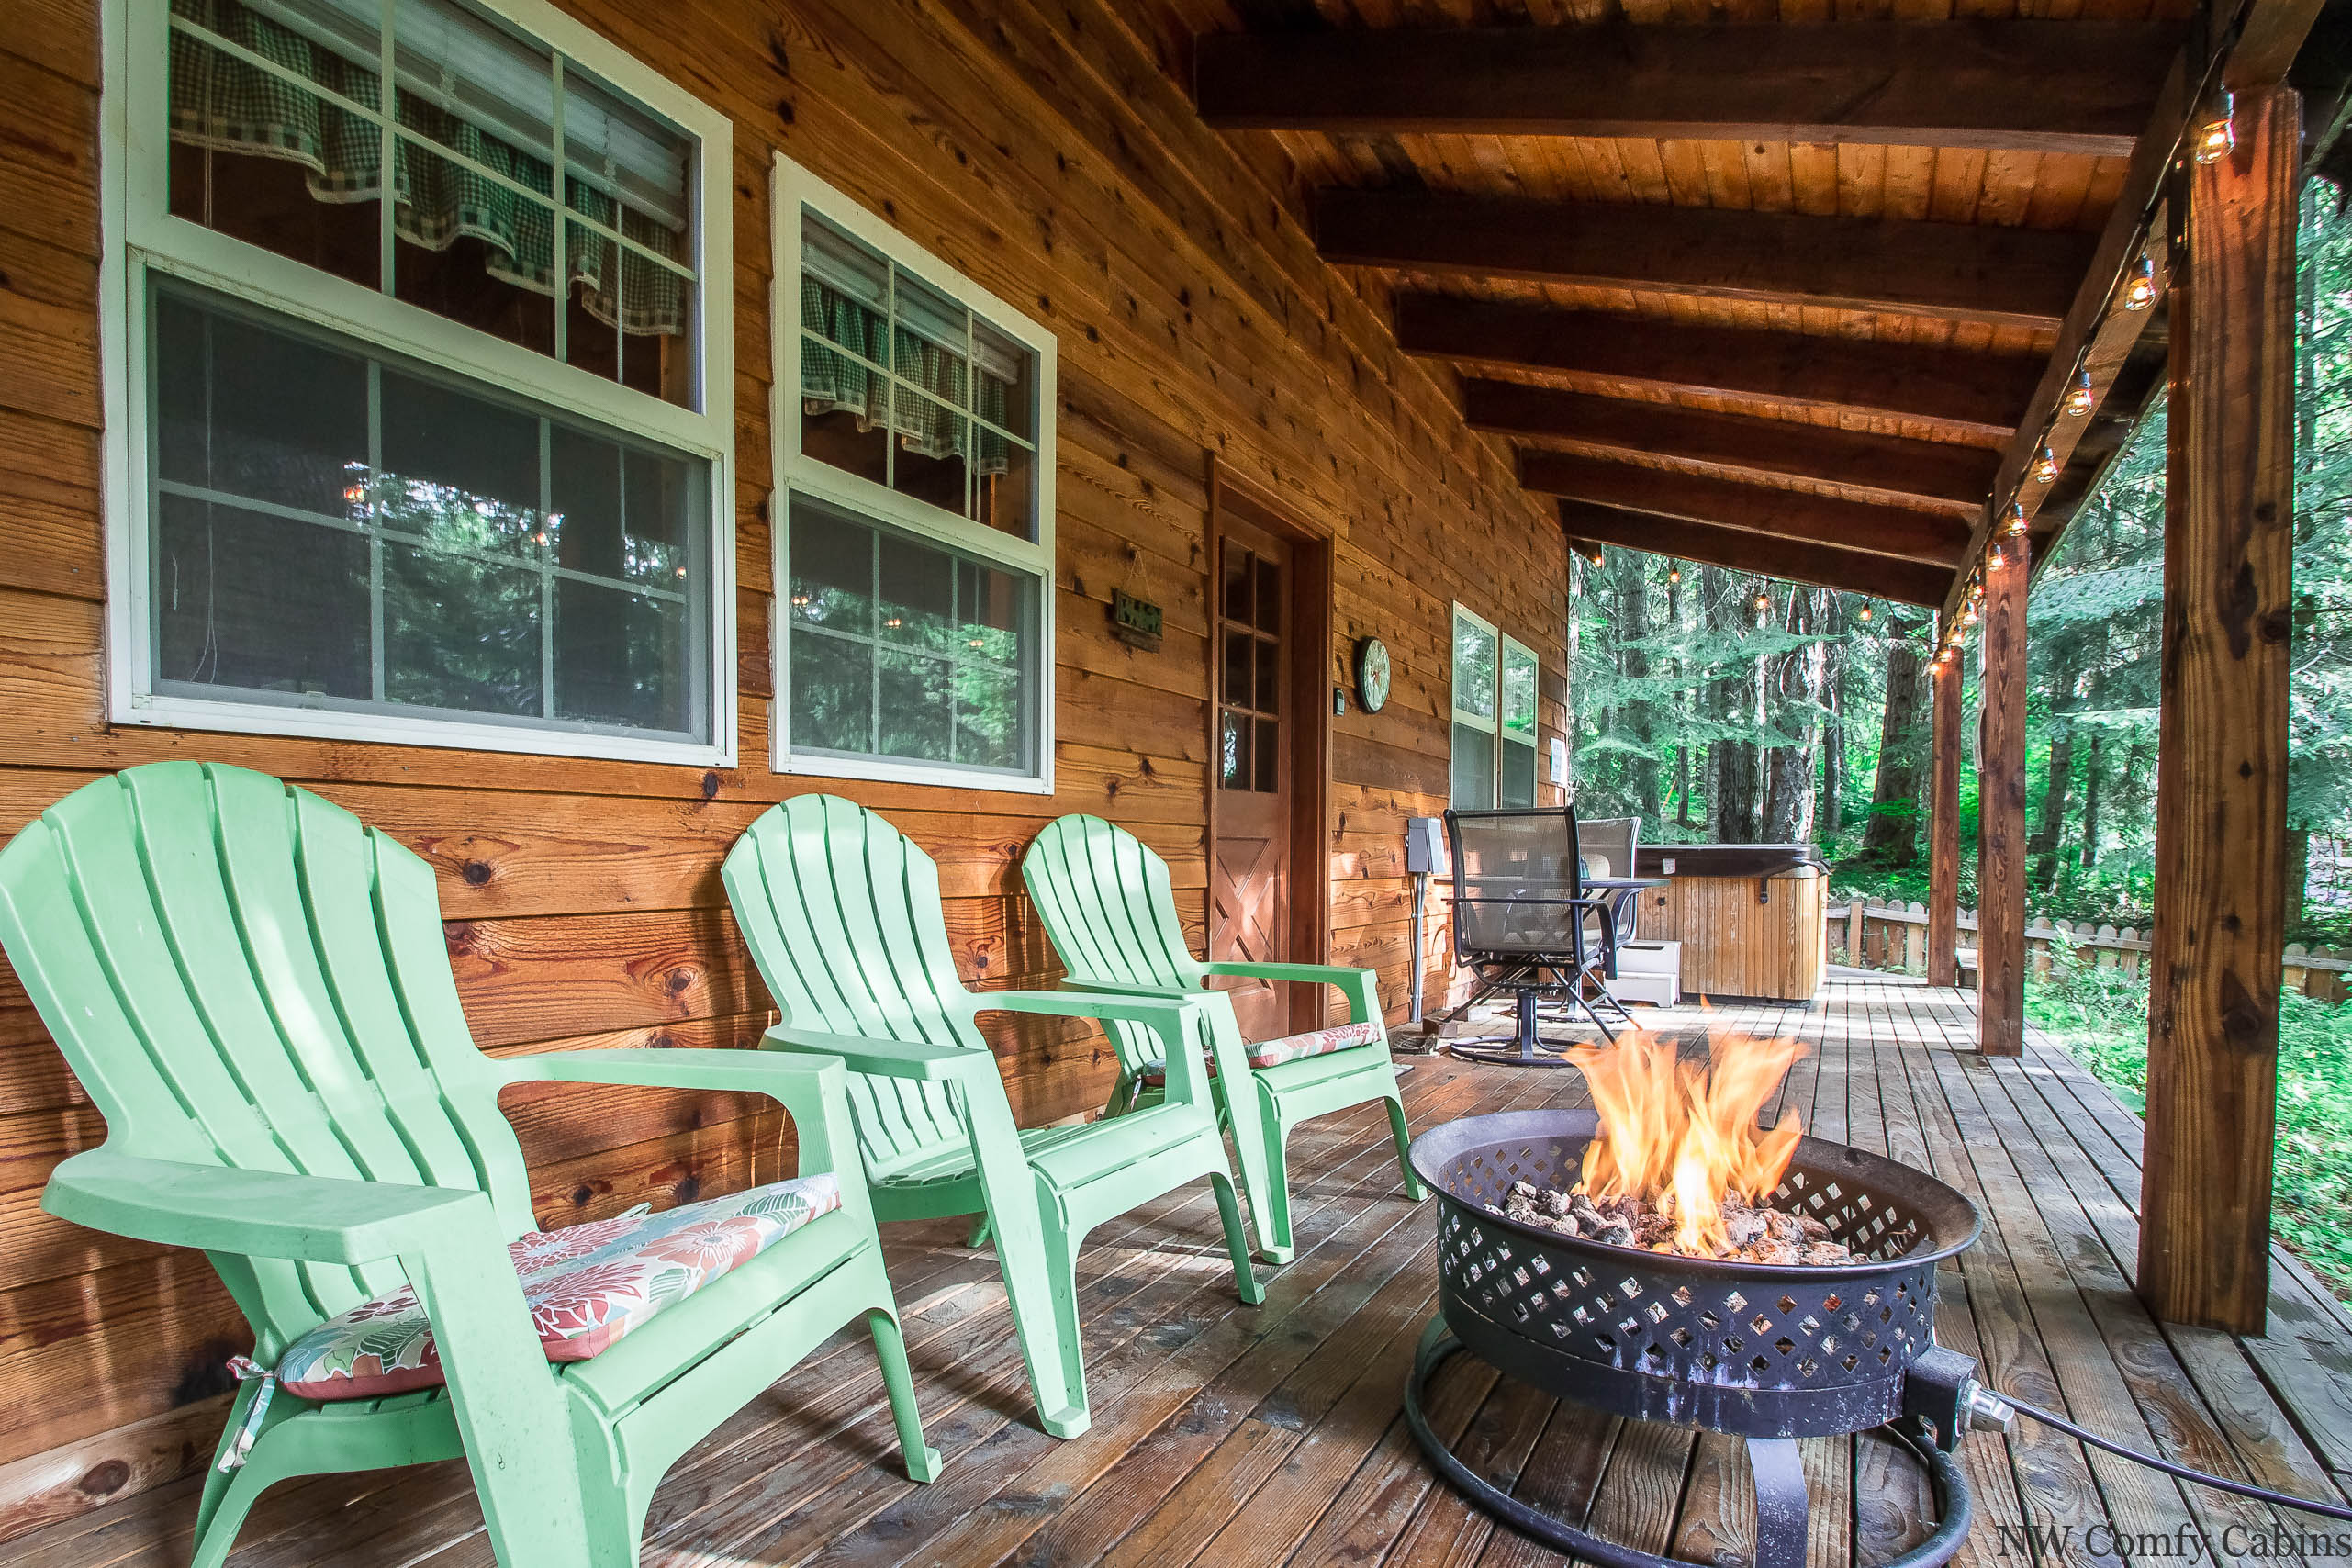 Chipmunk Lodge Nw Comfy Cabins Vacation Rentals